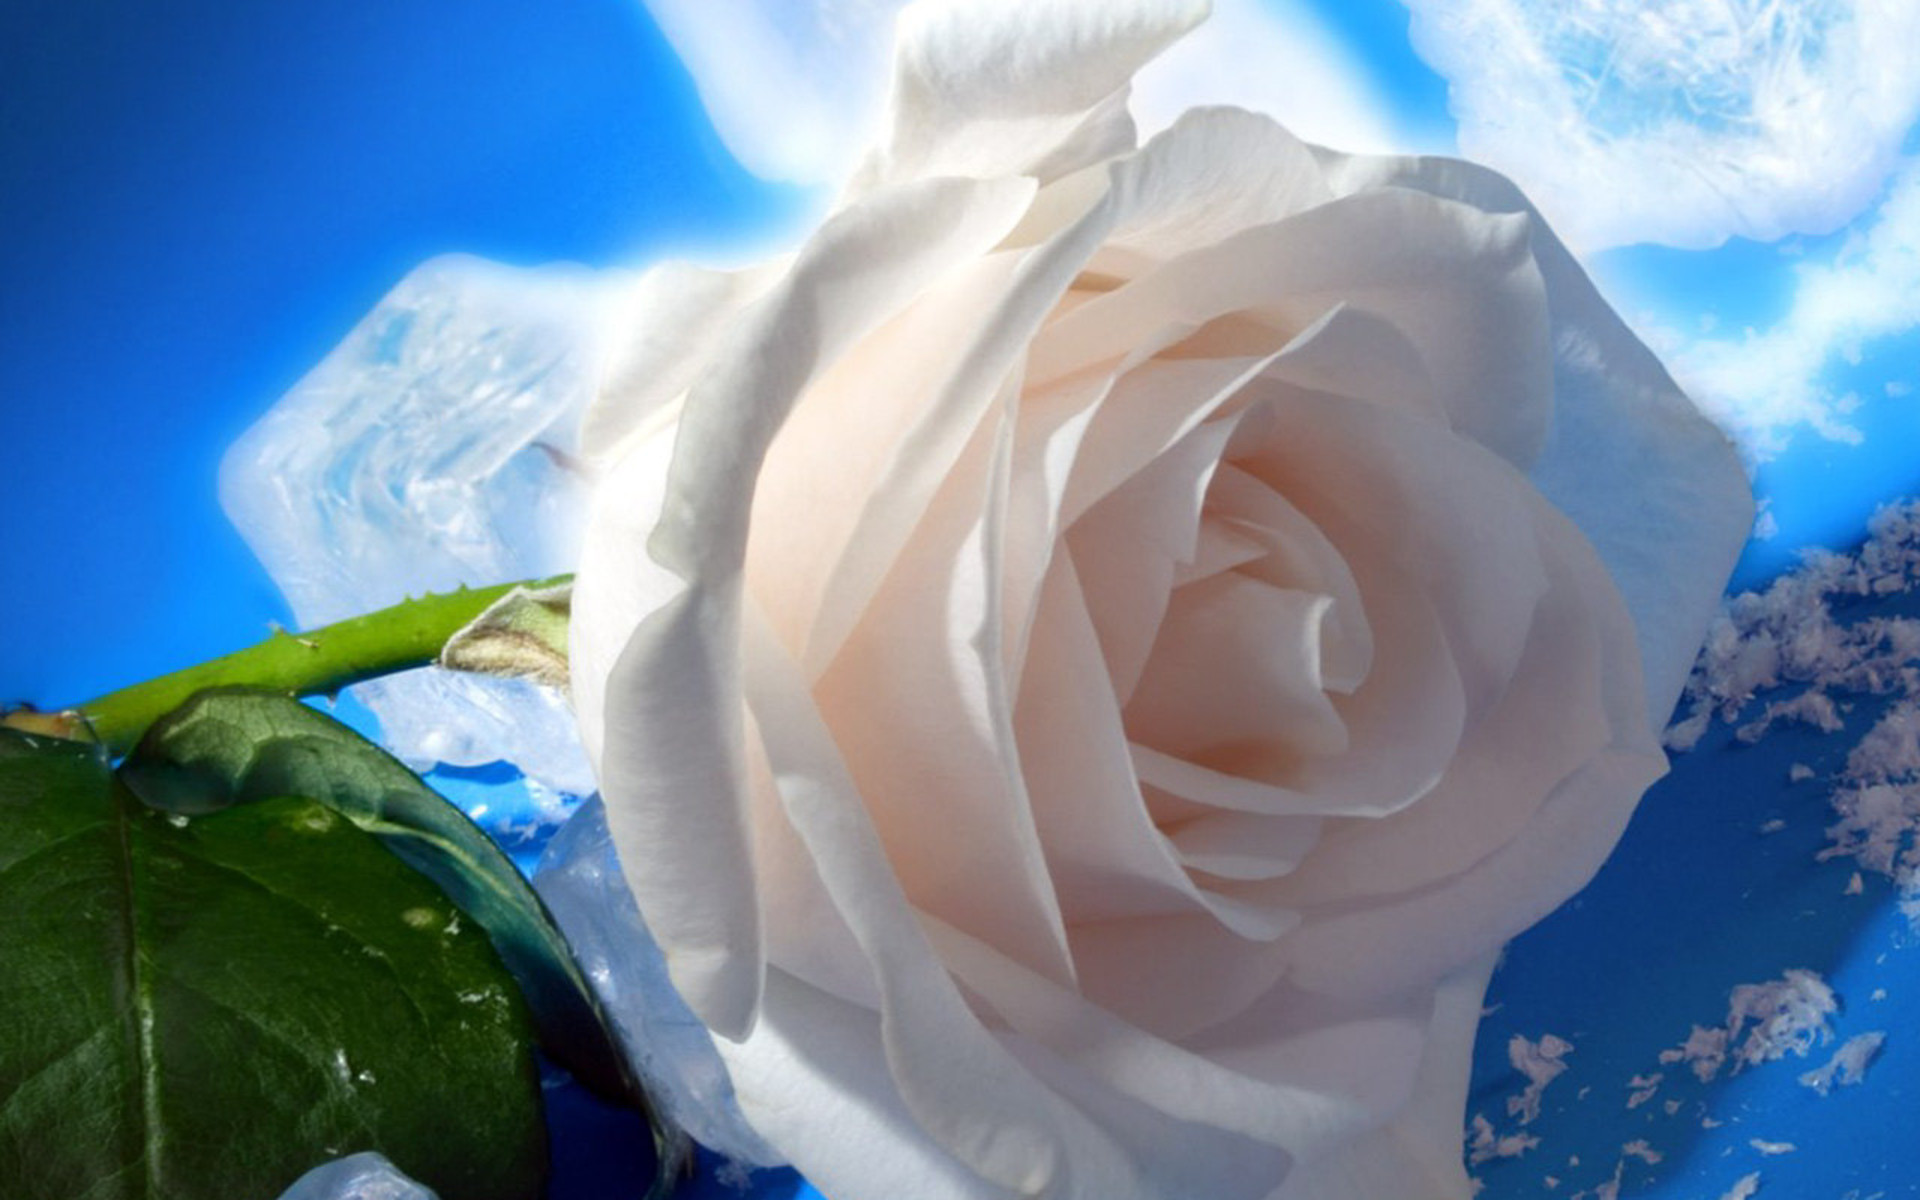 Hd wallpaper rose - White Rose Wallpapers